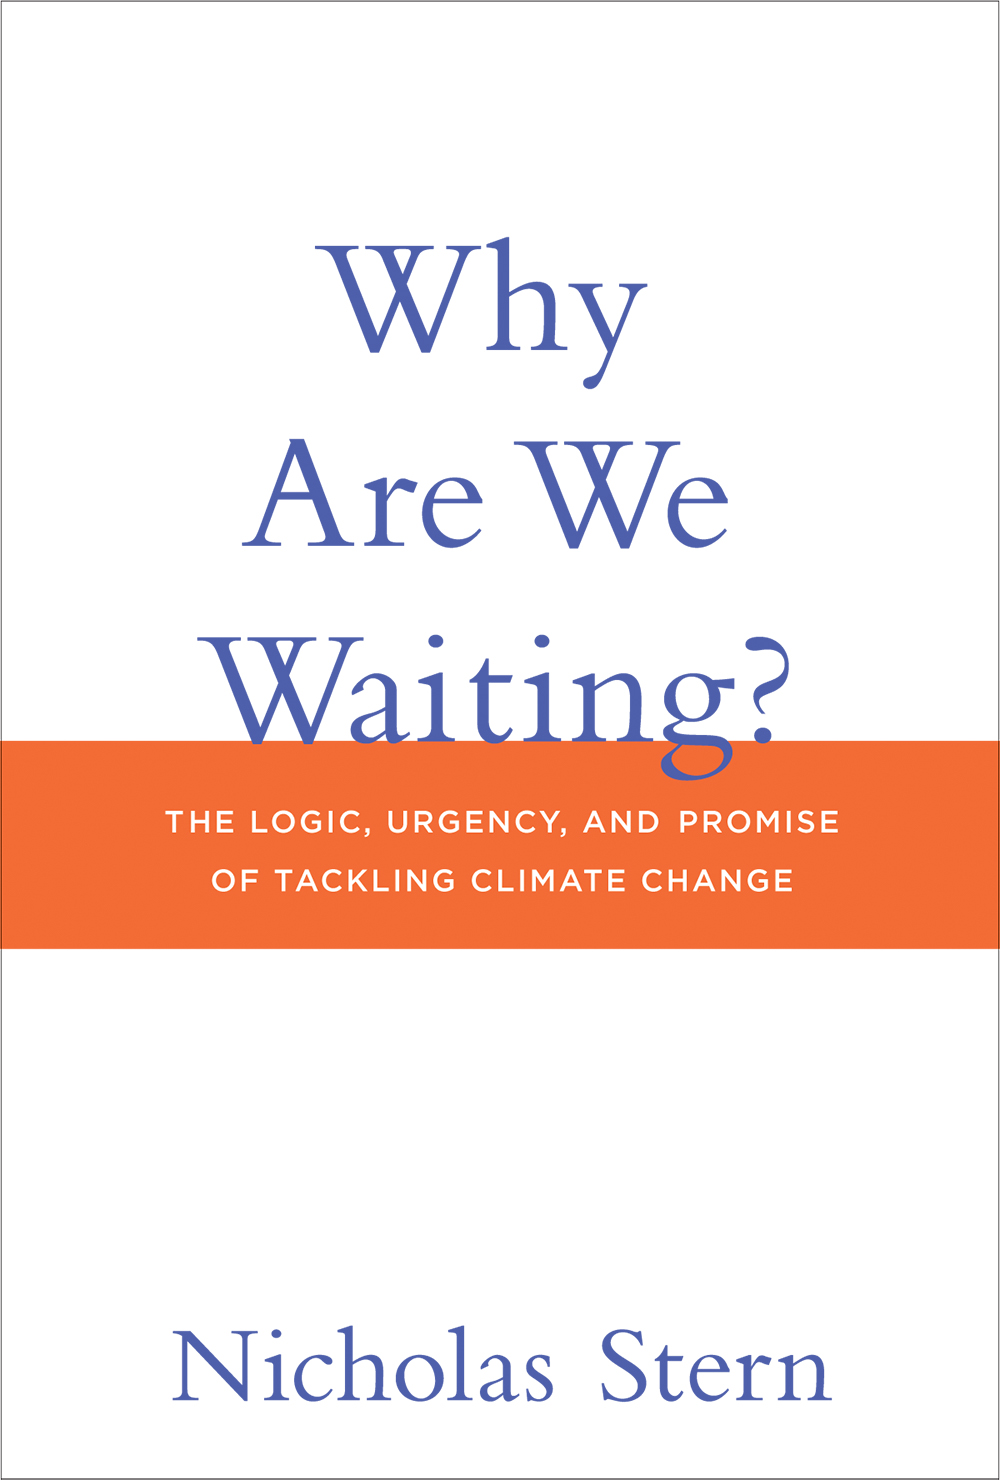 Cover of book titled Why Are We Waiting?